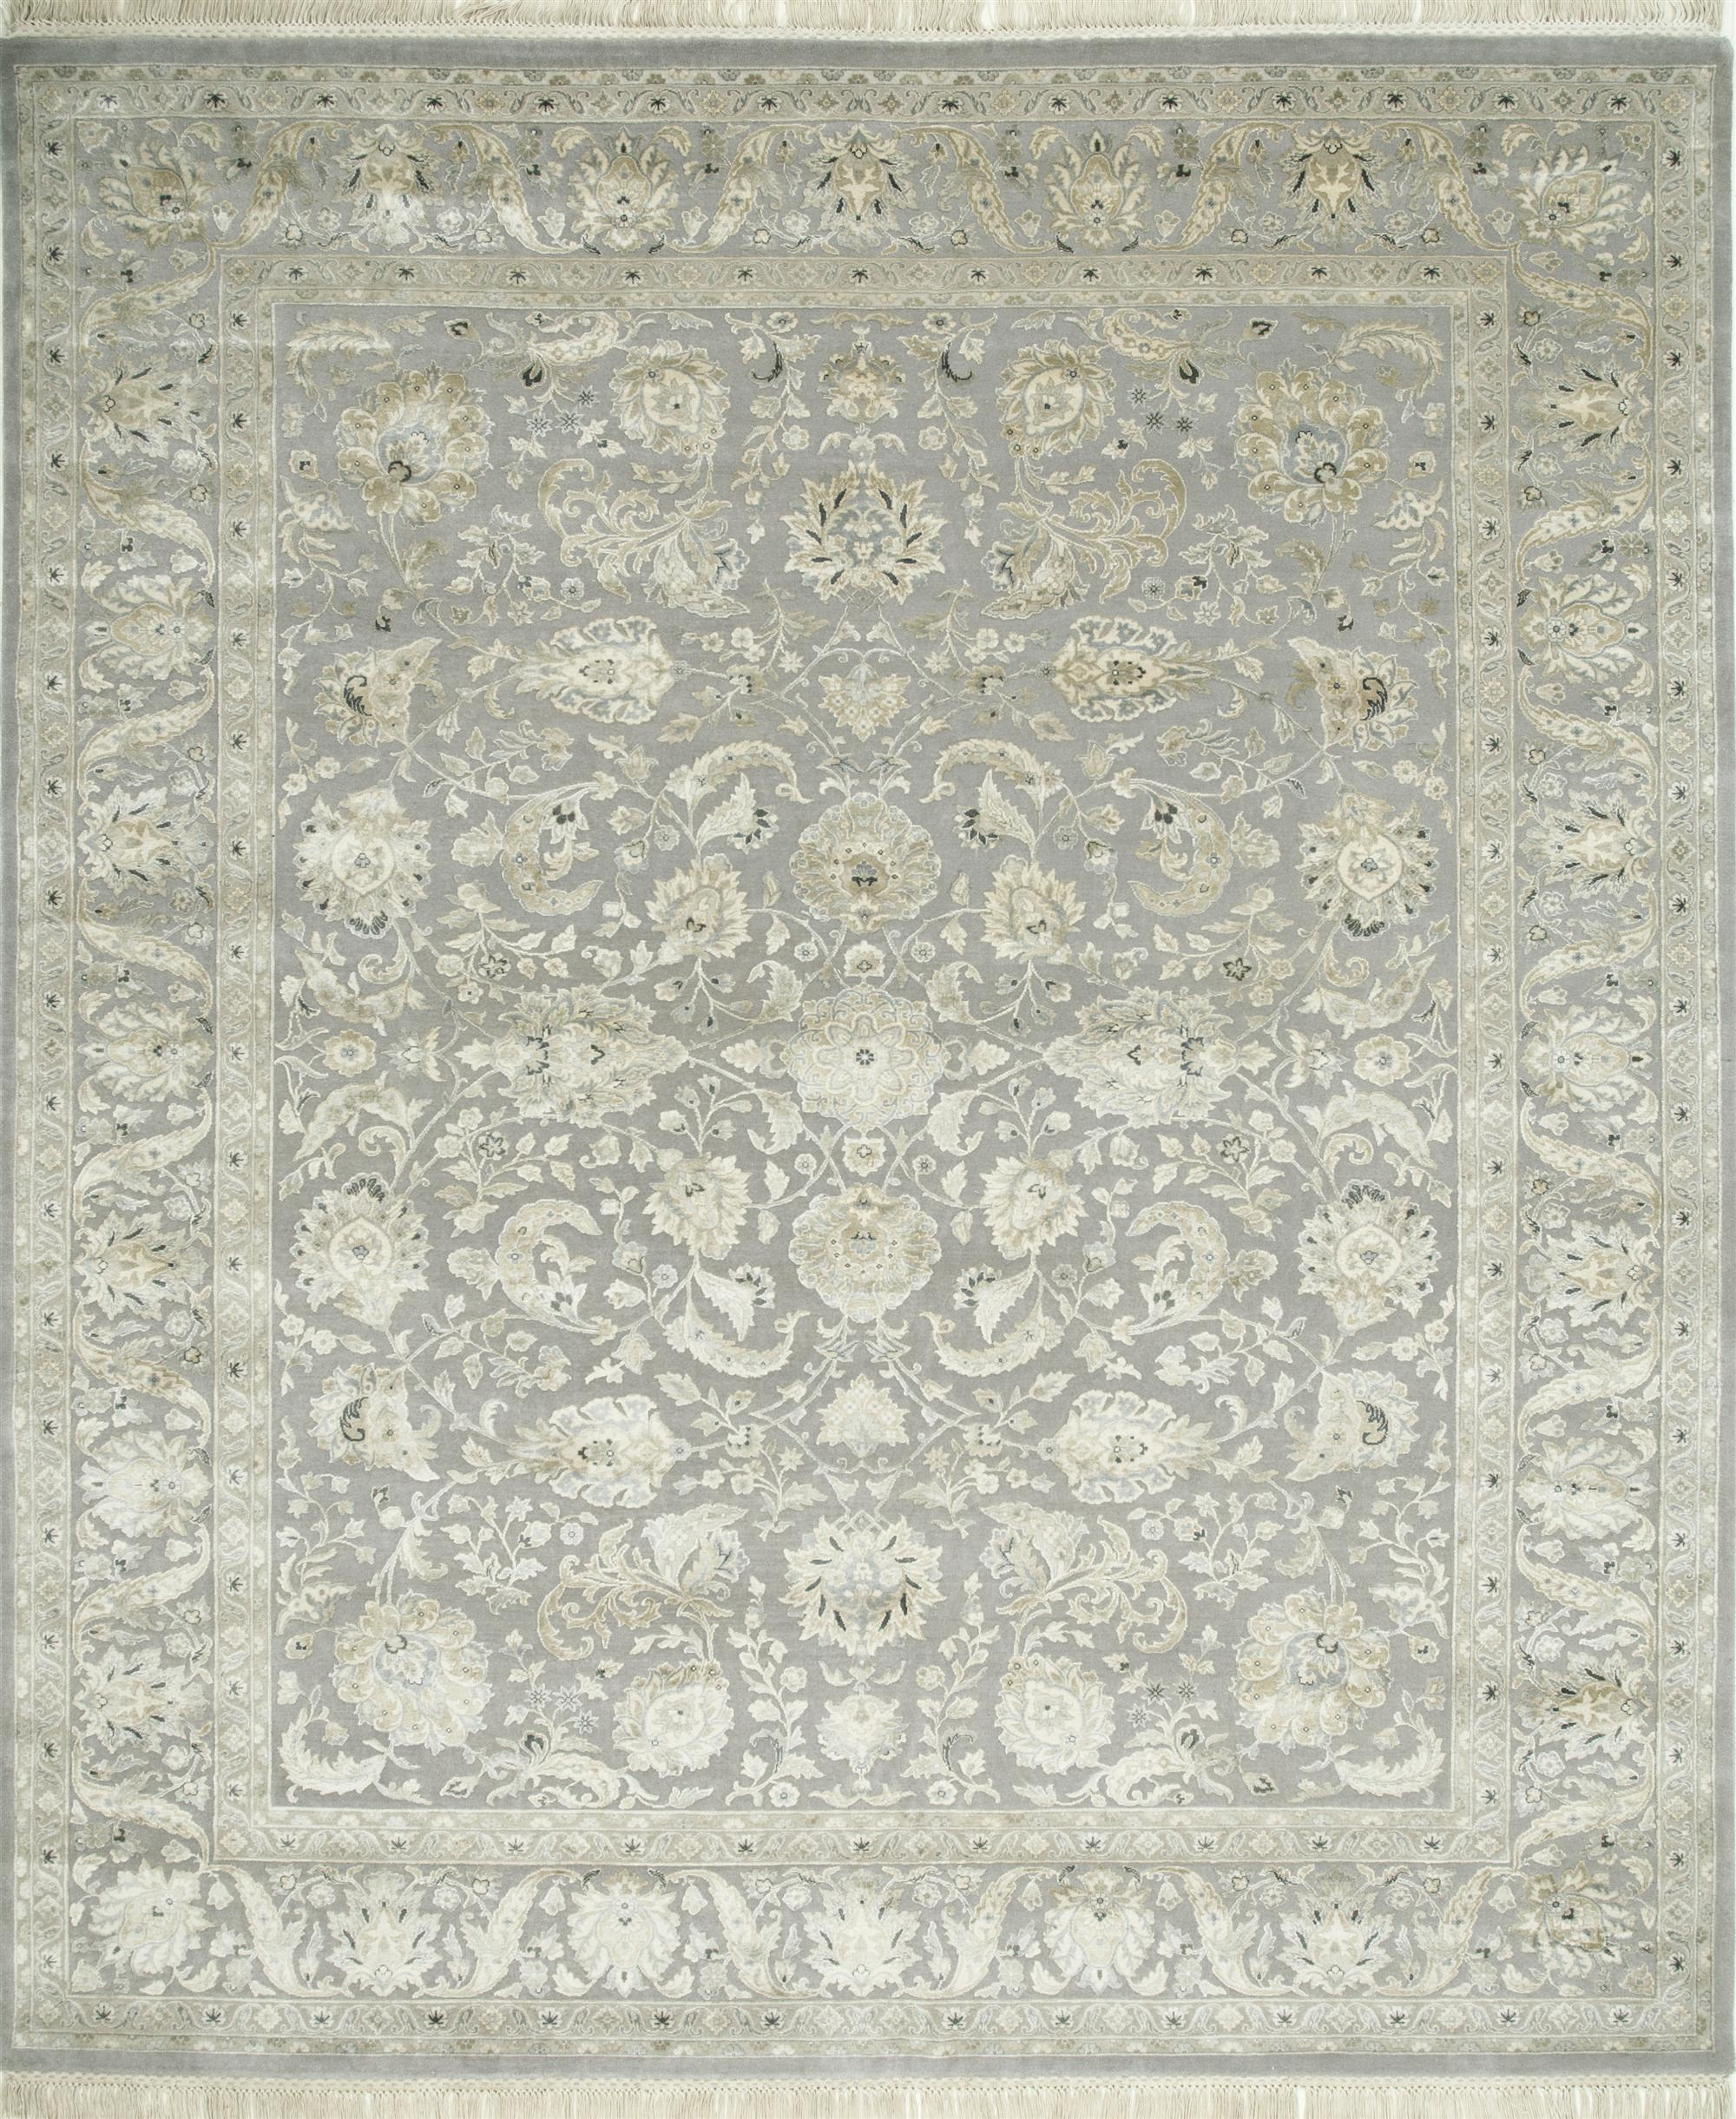 QNQ-10 Soft Gray/Soft Gray grey and black wool and silk hand knotted Rug